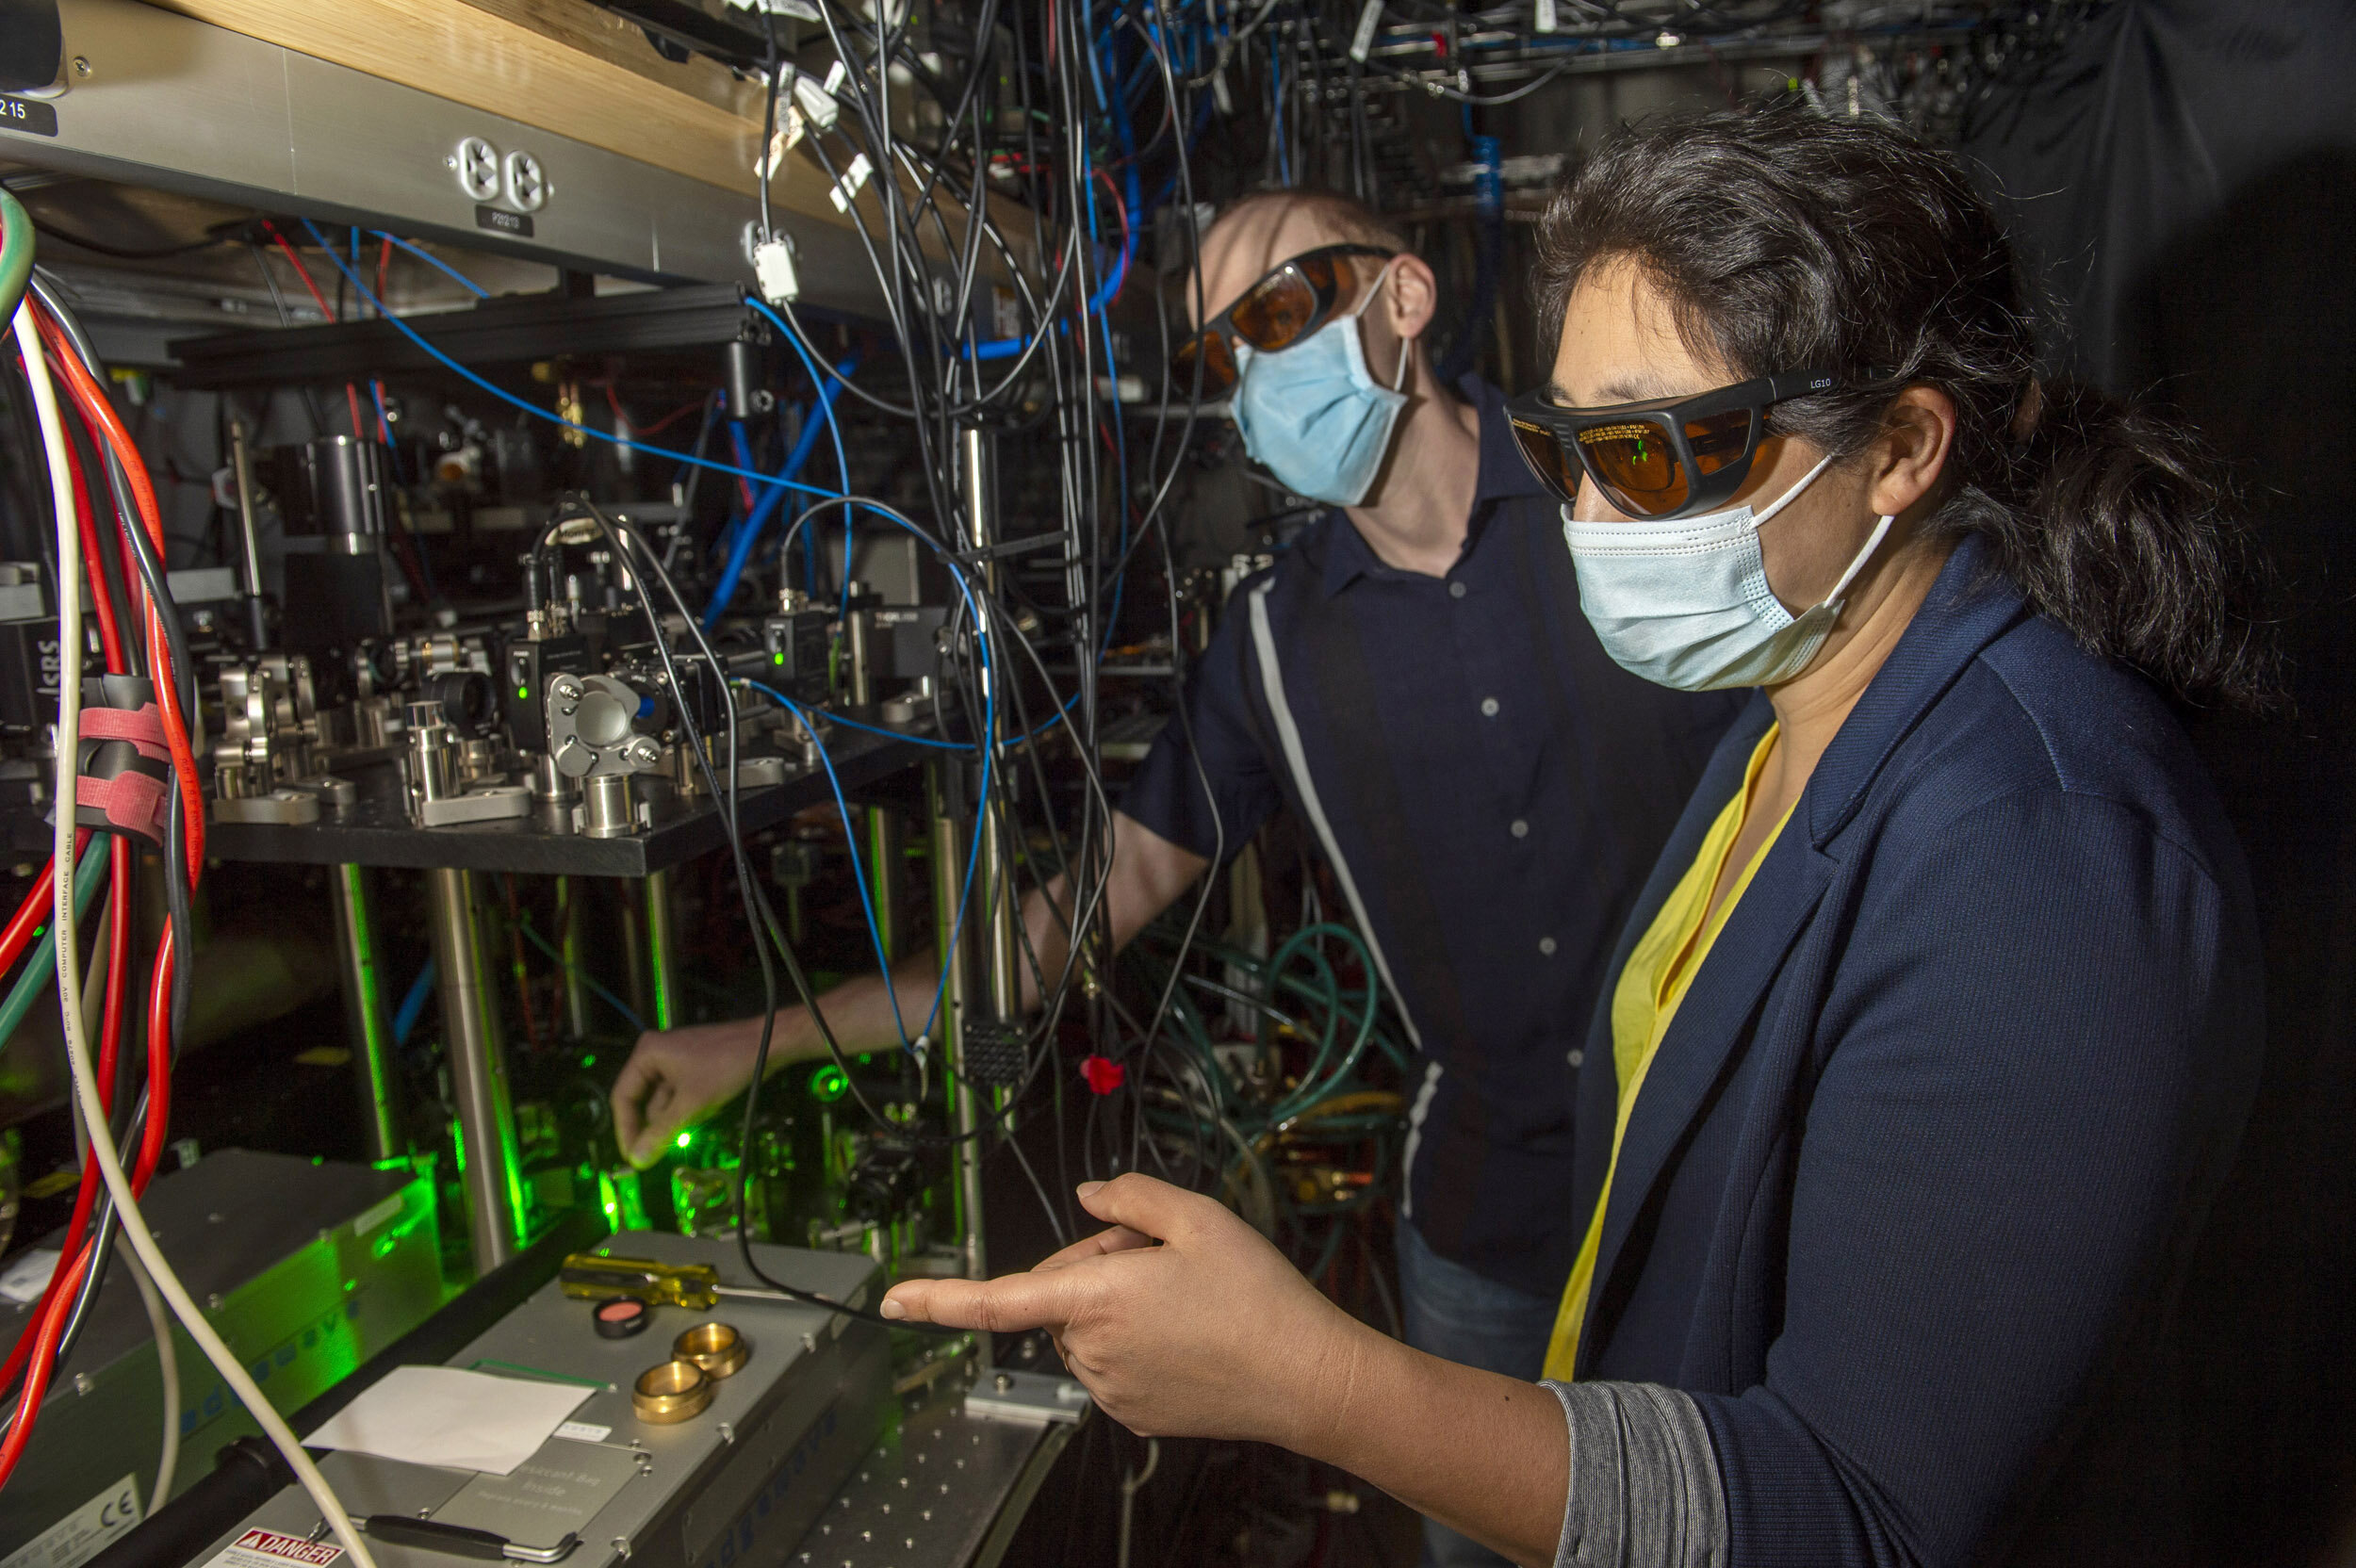 Researchers are designing new experiments to map and test the mysterious quantum realm